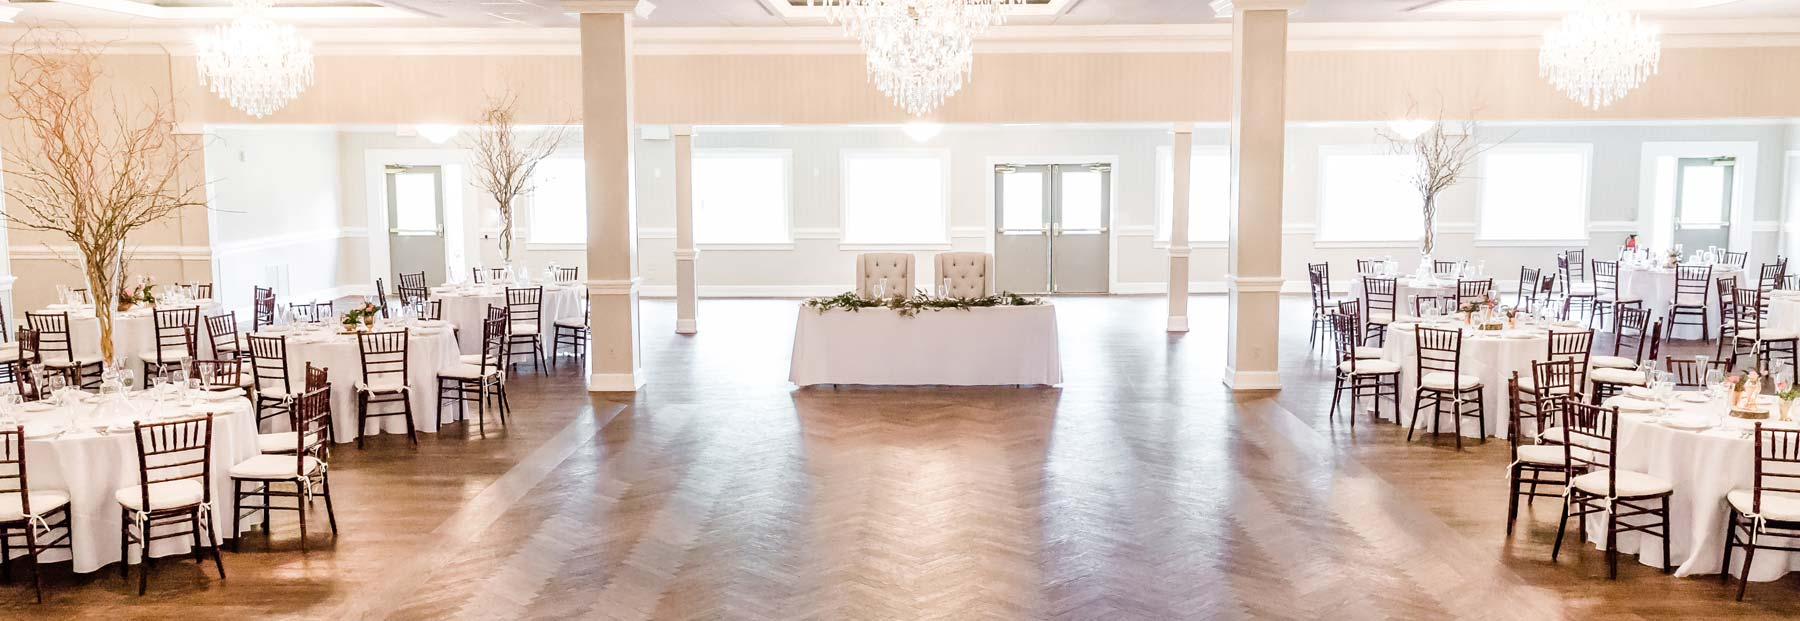 Centerton Event Center | The Grove Weddings and Events